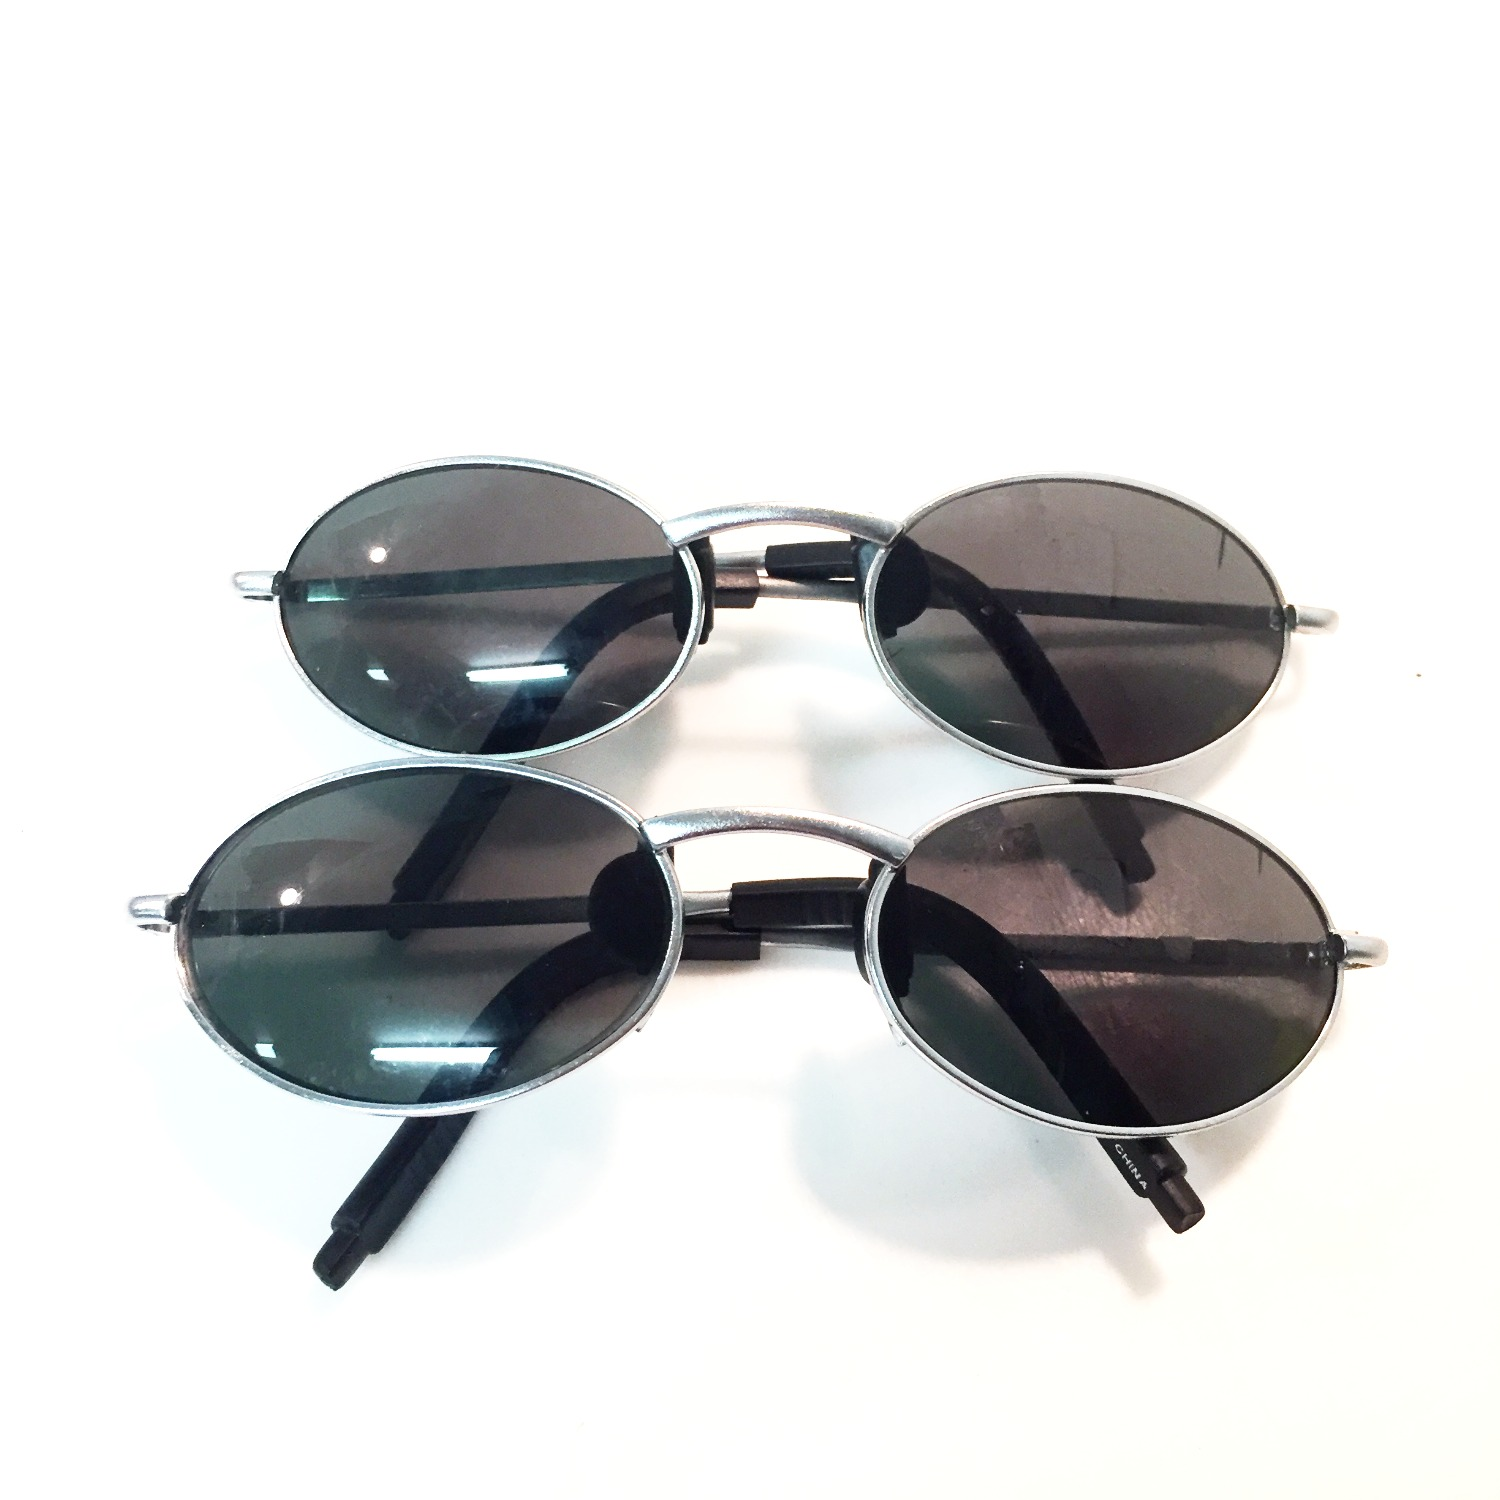 Sunglasses for Props